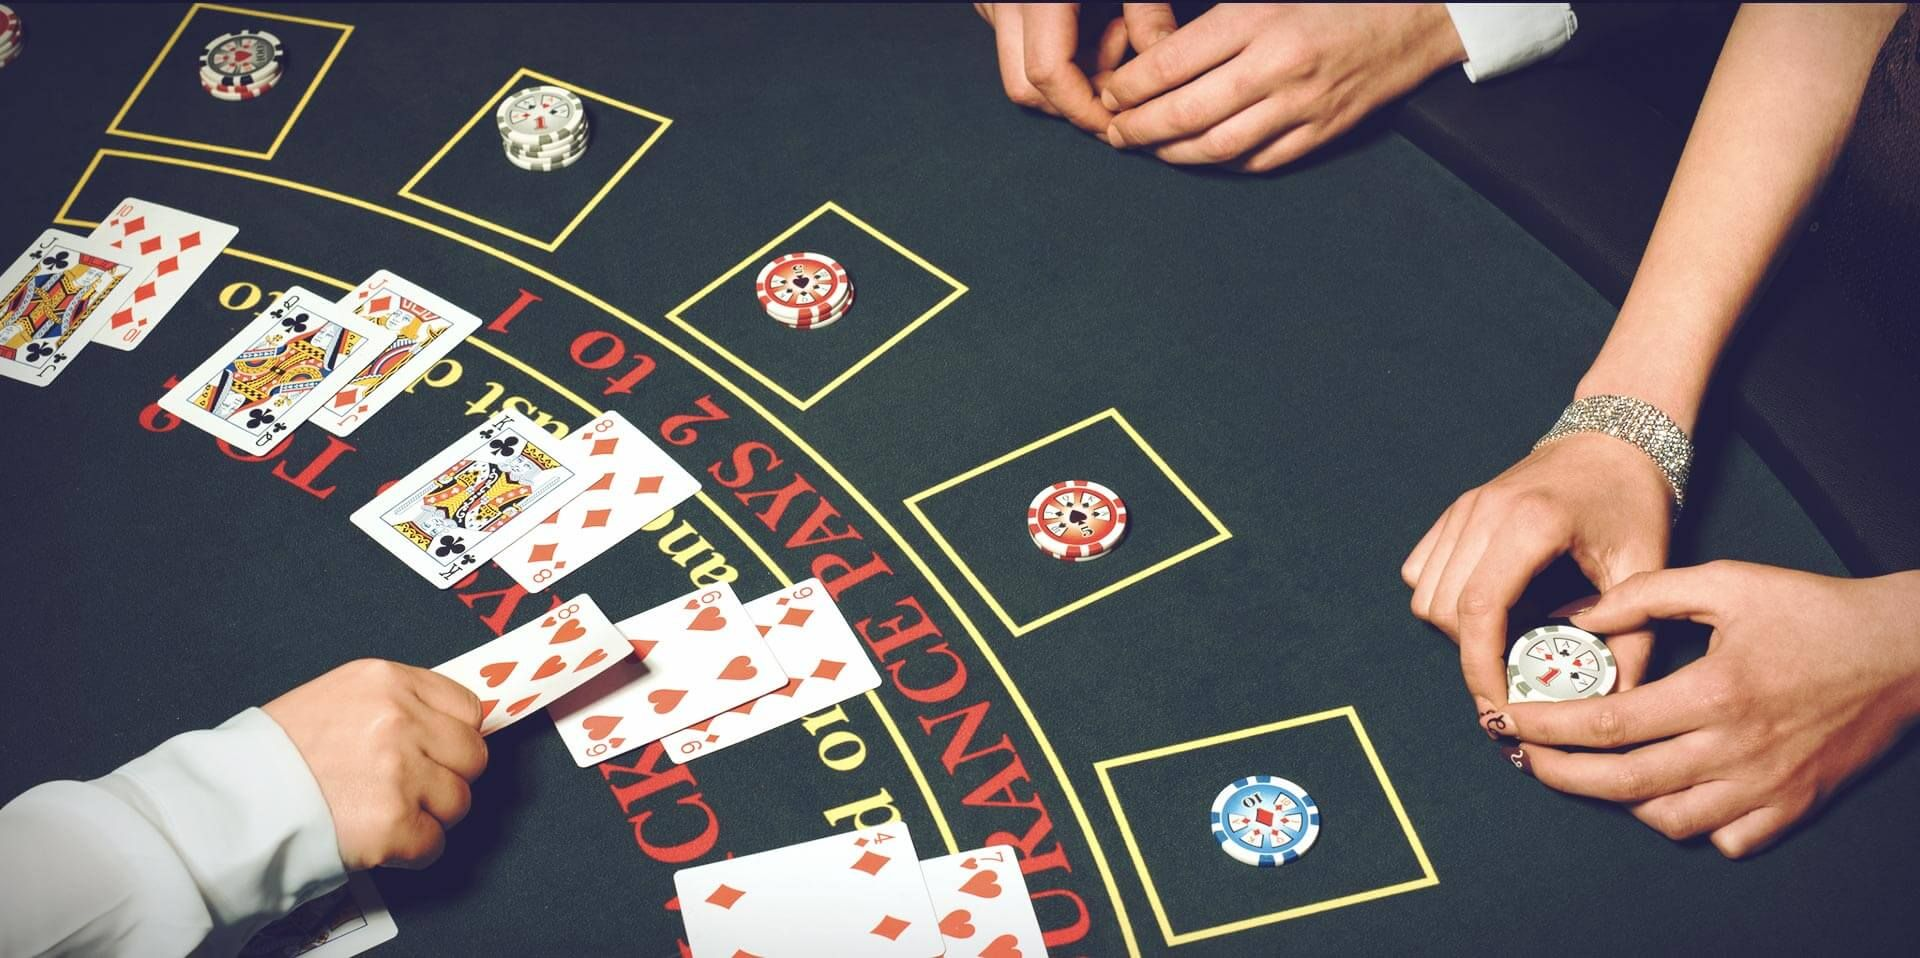 Blackjack at 99 cool math games this game is the age old